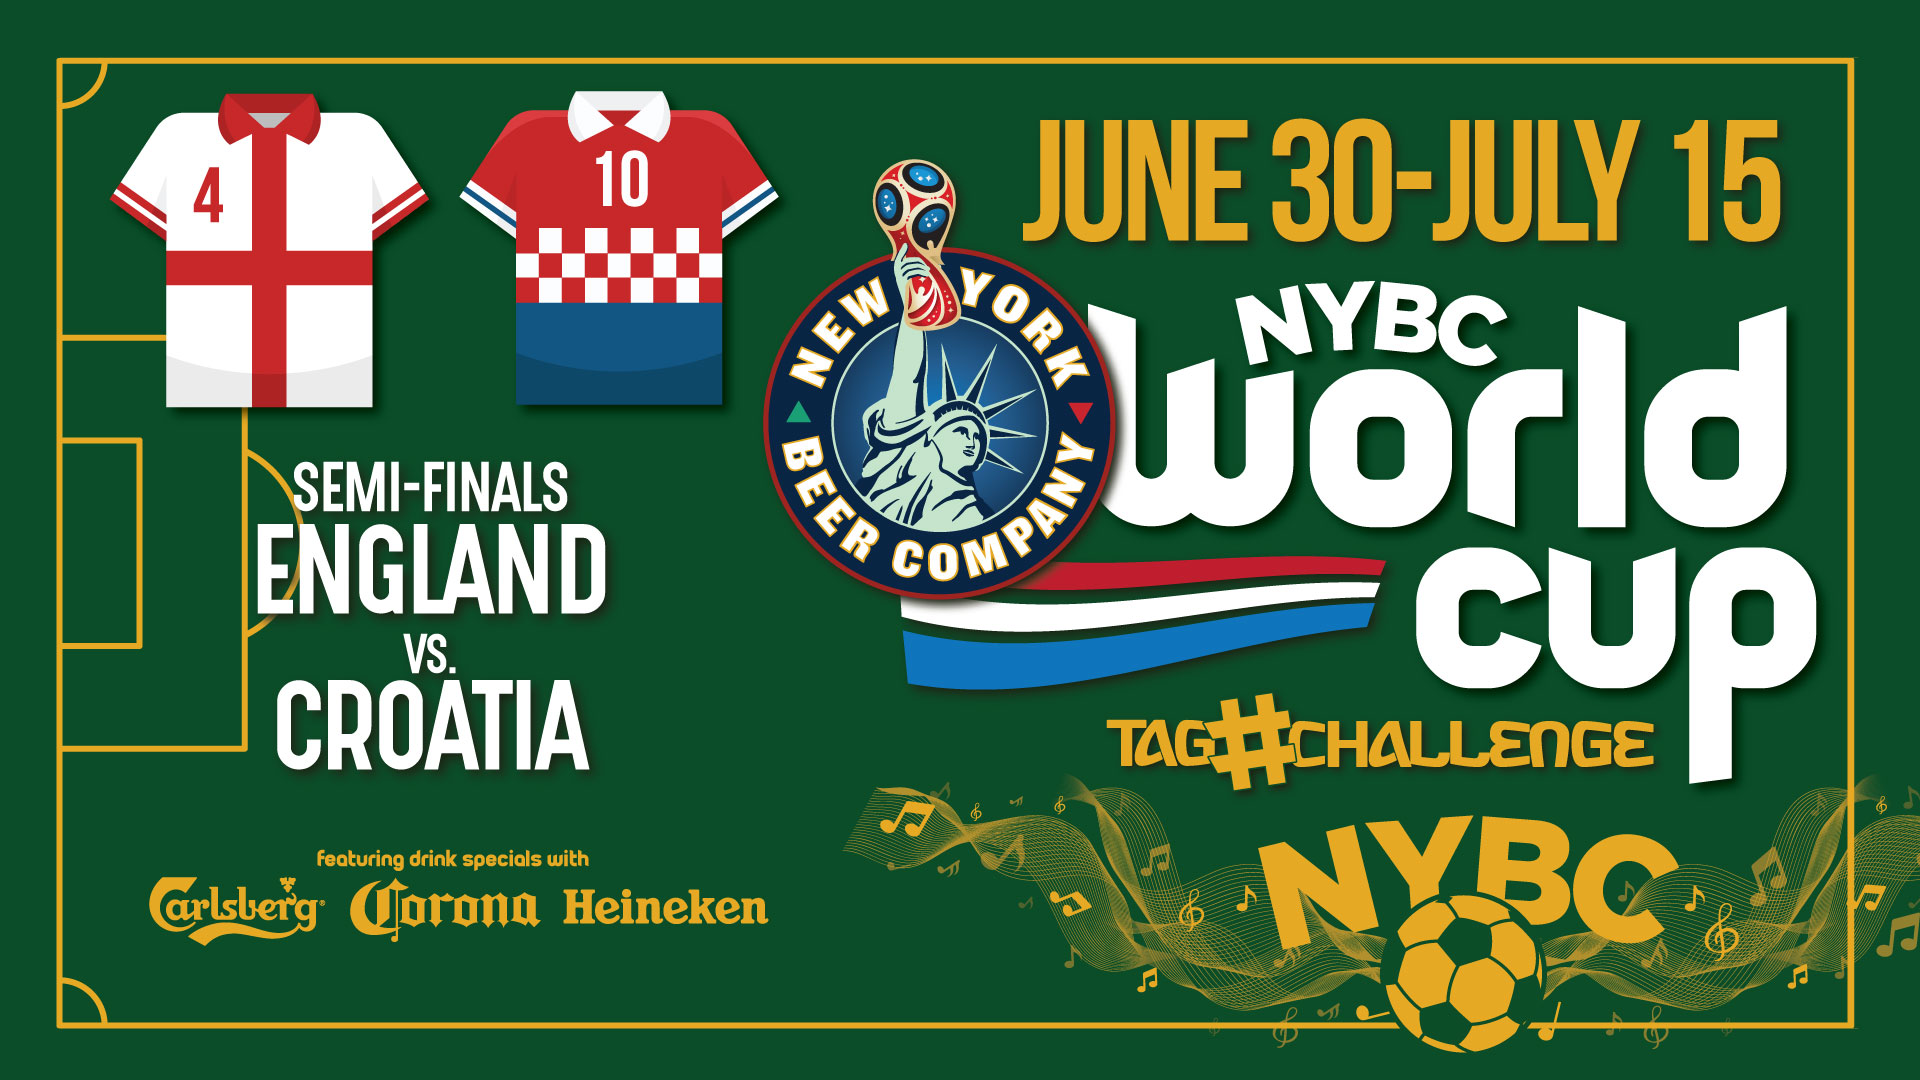 Watch World Cup NYC SEMIFINALS ENGLAND vs. CROATIA